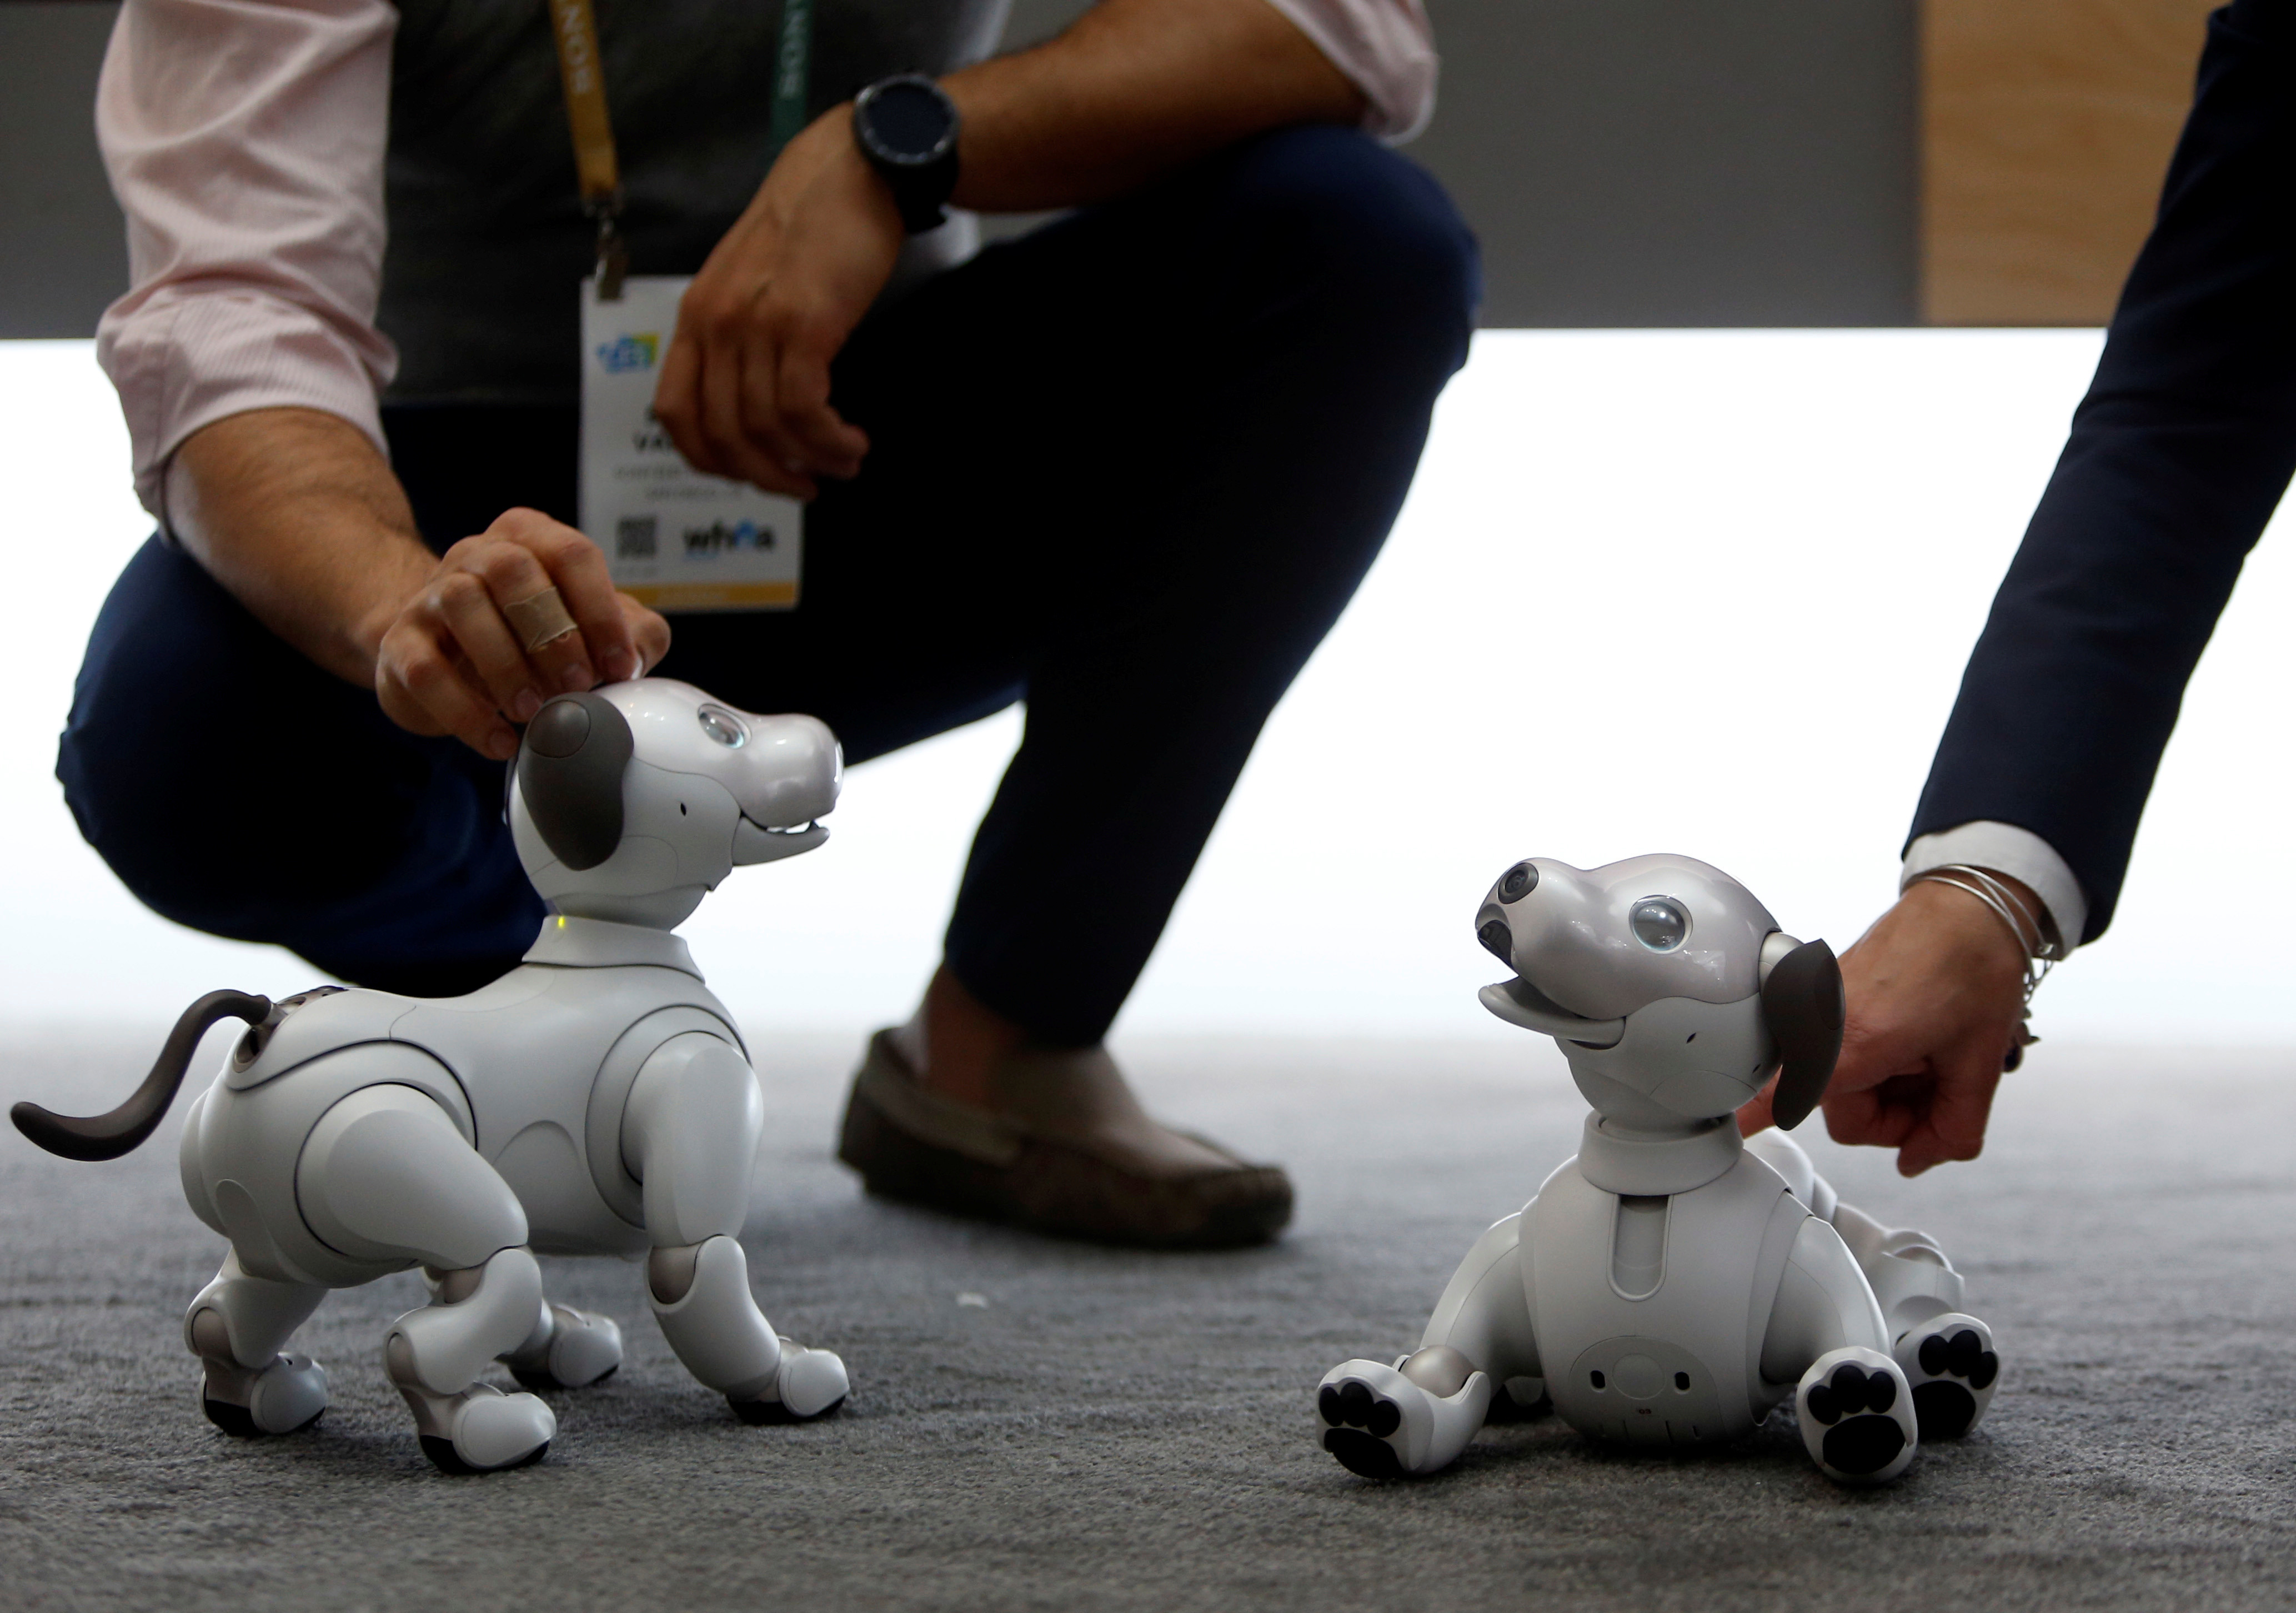 Sony's Aibo robotic dogs are displayed during the 2018 CES in Las Vegas, Nevada, U.S. January 8, 2018. REUTERS/Steve Marcus - RC1931AEAB10